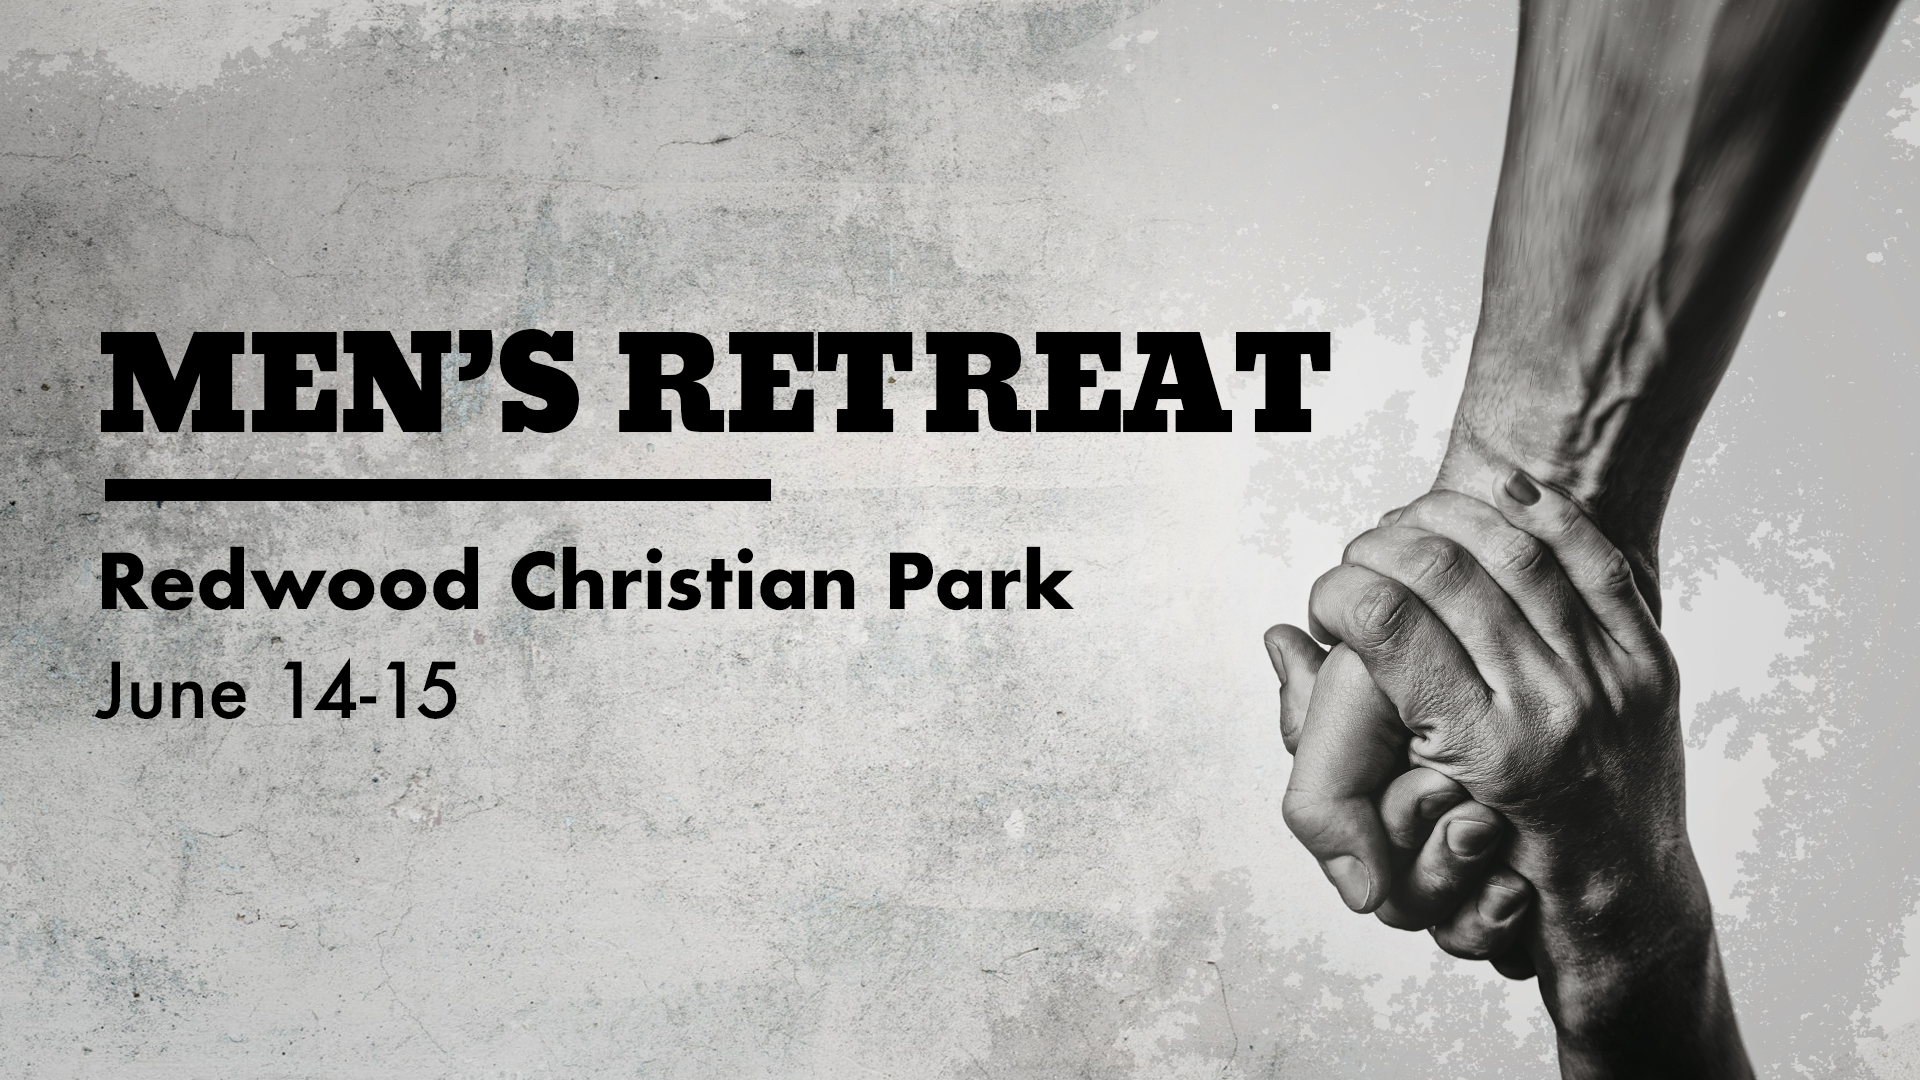 Men of Redemption! Our retreat is coming up and we'd love to have all of you attend. The cost is $145 with the option to sponsor registration for other men. We don't want cost to be a barrier for anyone so please email  info@redemptionsf.com  if you need financial assistance for your registration. Plan for a Friday evening arrival, Saturday evening return. We'll have a carpool list closer to the event.   COST : $145 (with the option to give more toward a scholarship fund)  Cost includes: Lodging, breakfast, lunch and dinner on Saturday, snacks, our wonderful speaker, Michael Field from Fellowship Monrovia, worship leader Cormac Parker Jr., and venue space for our retreat.   REGISTER HERE